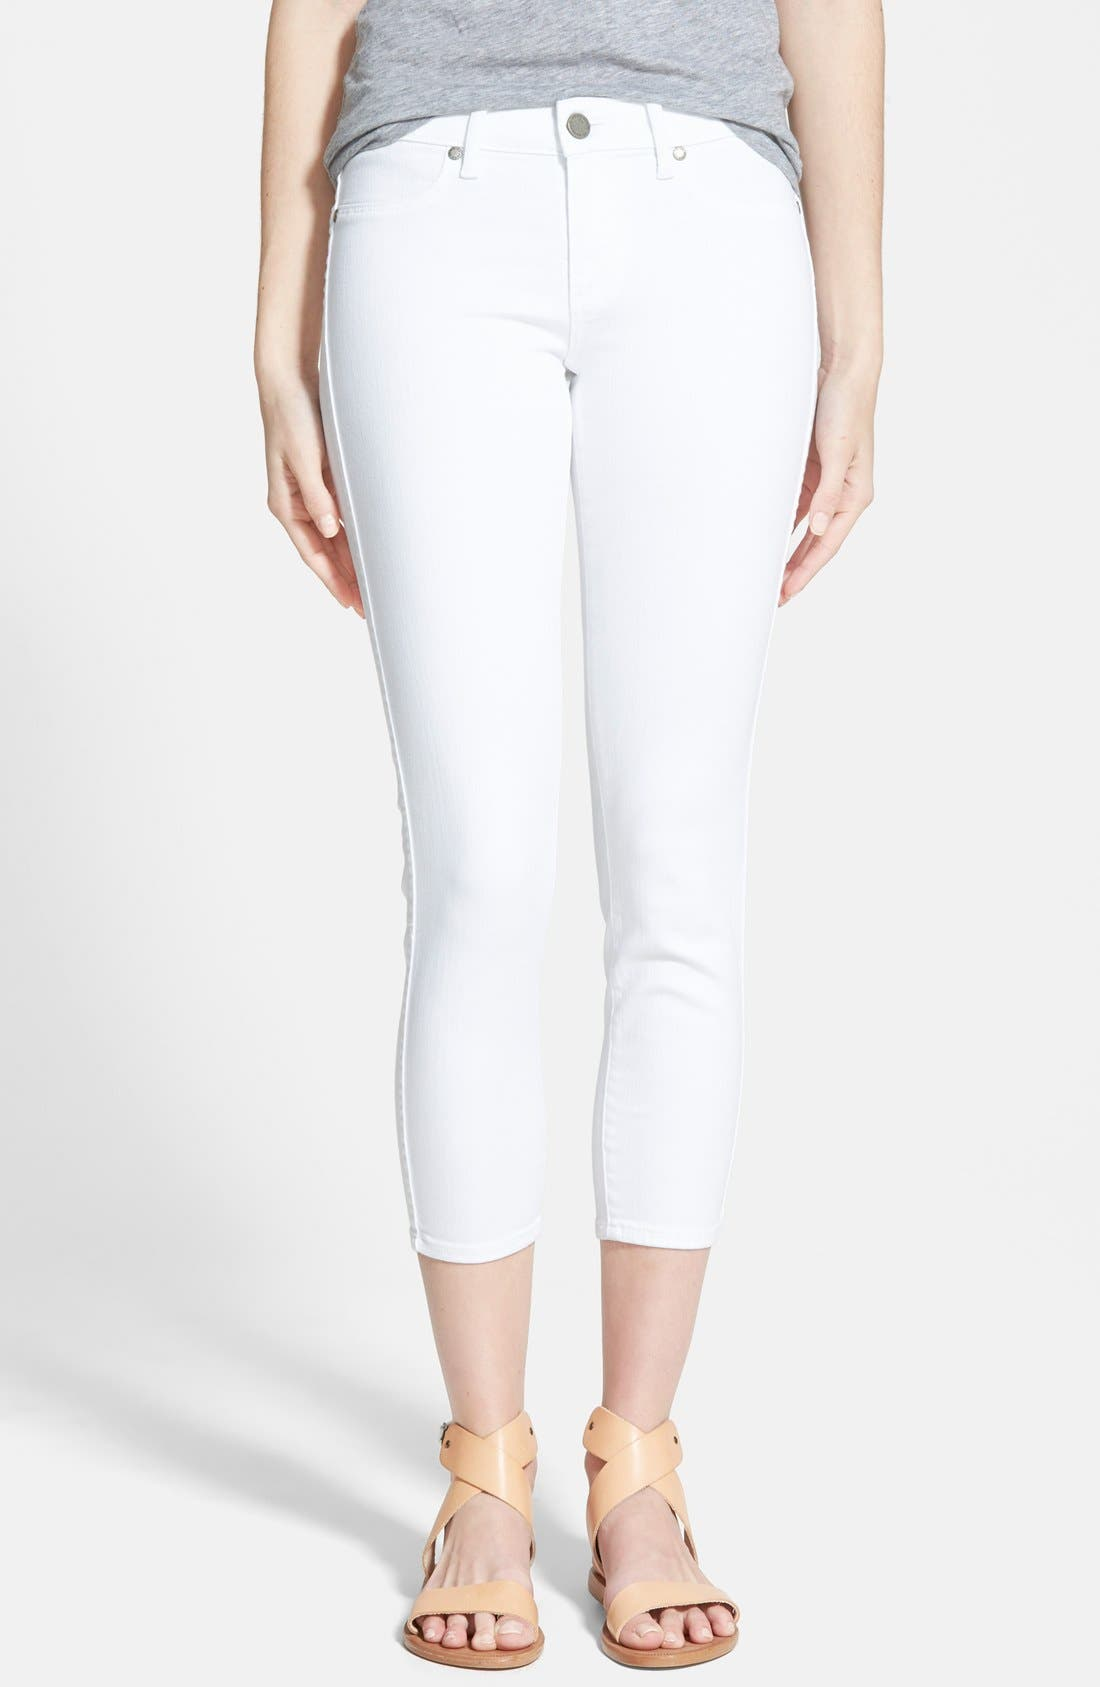 Alternate Image 1 Selected - PAIGE 'Verdugo' Crop Skinny Jeans (Ultra White)